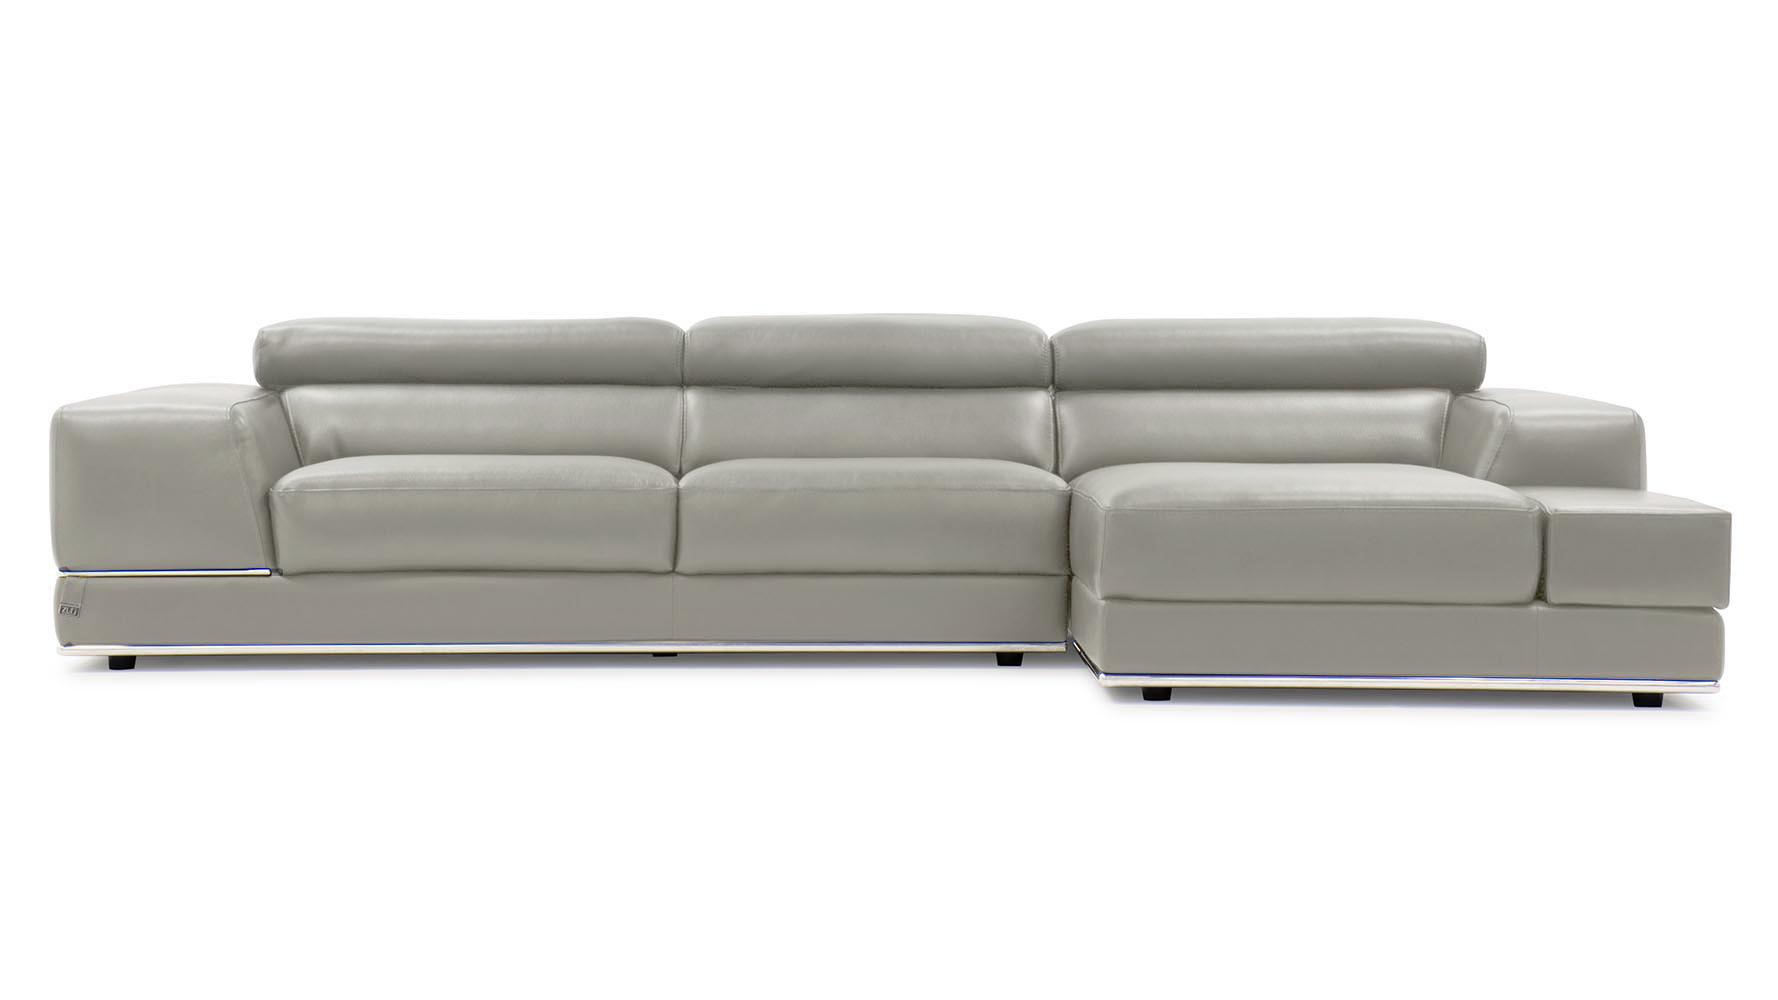 Grey Leather Sectional Sofa 1717 Leather Sectional Sofa In